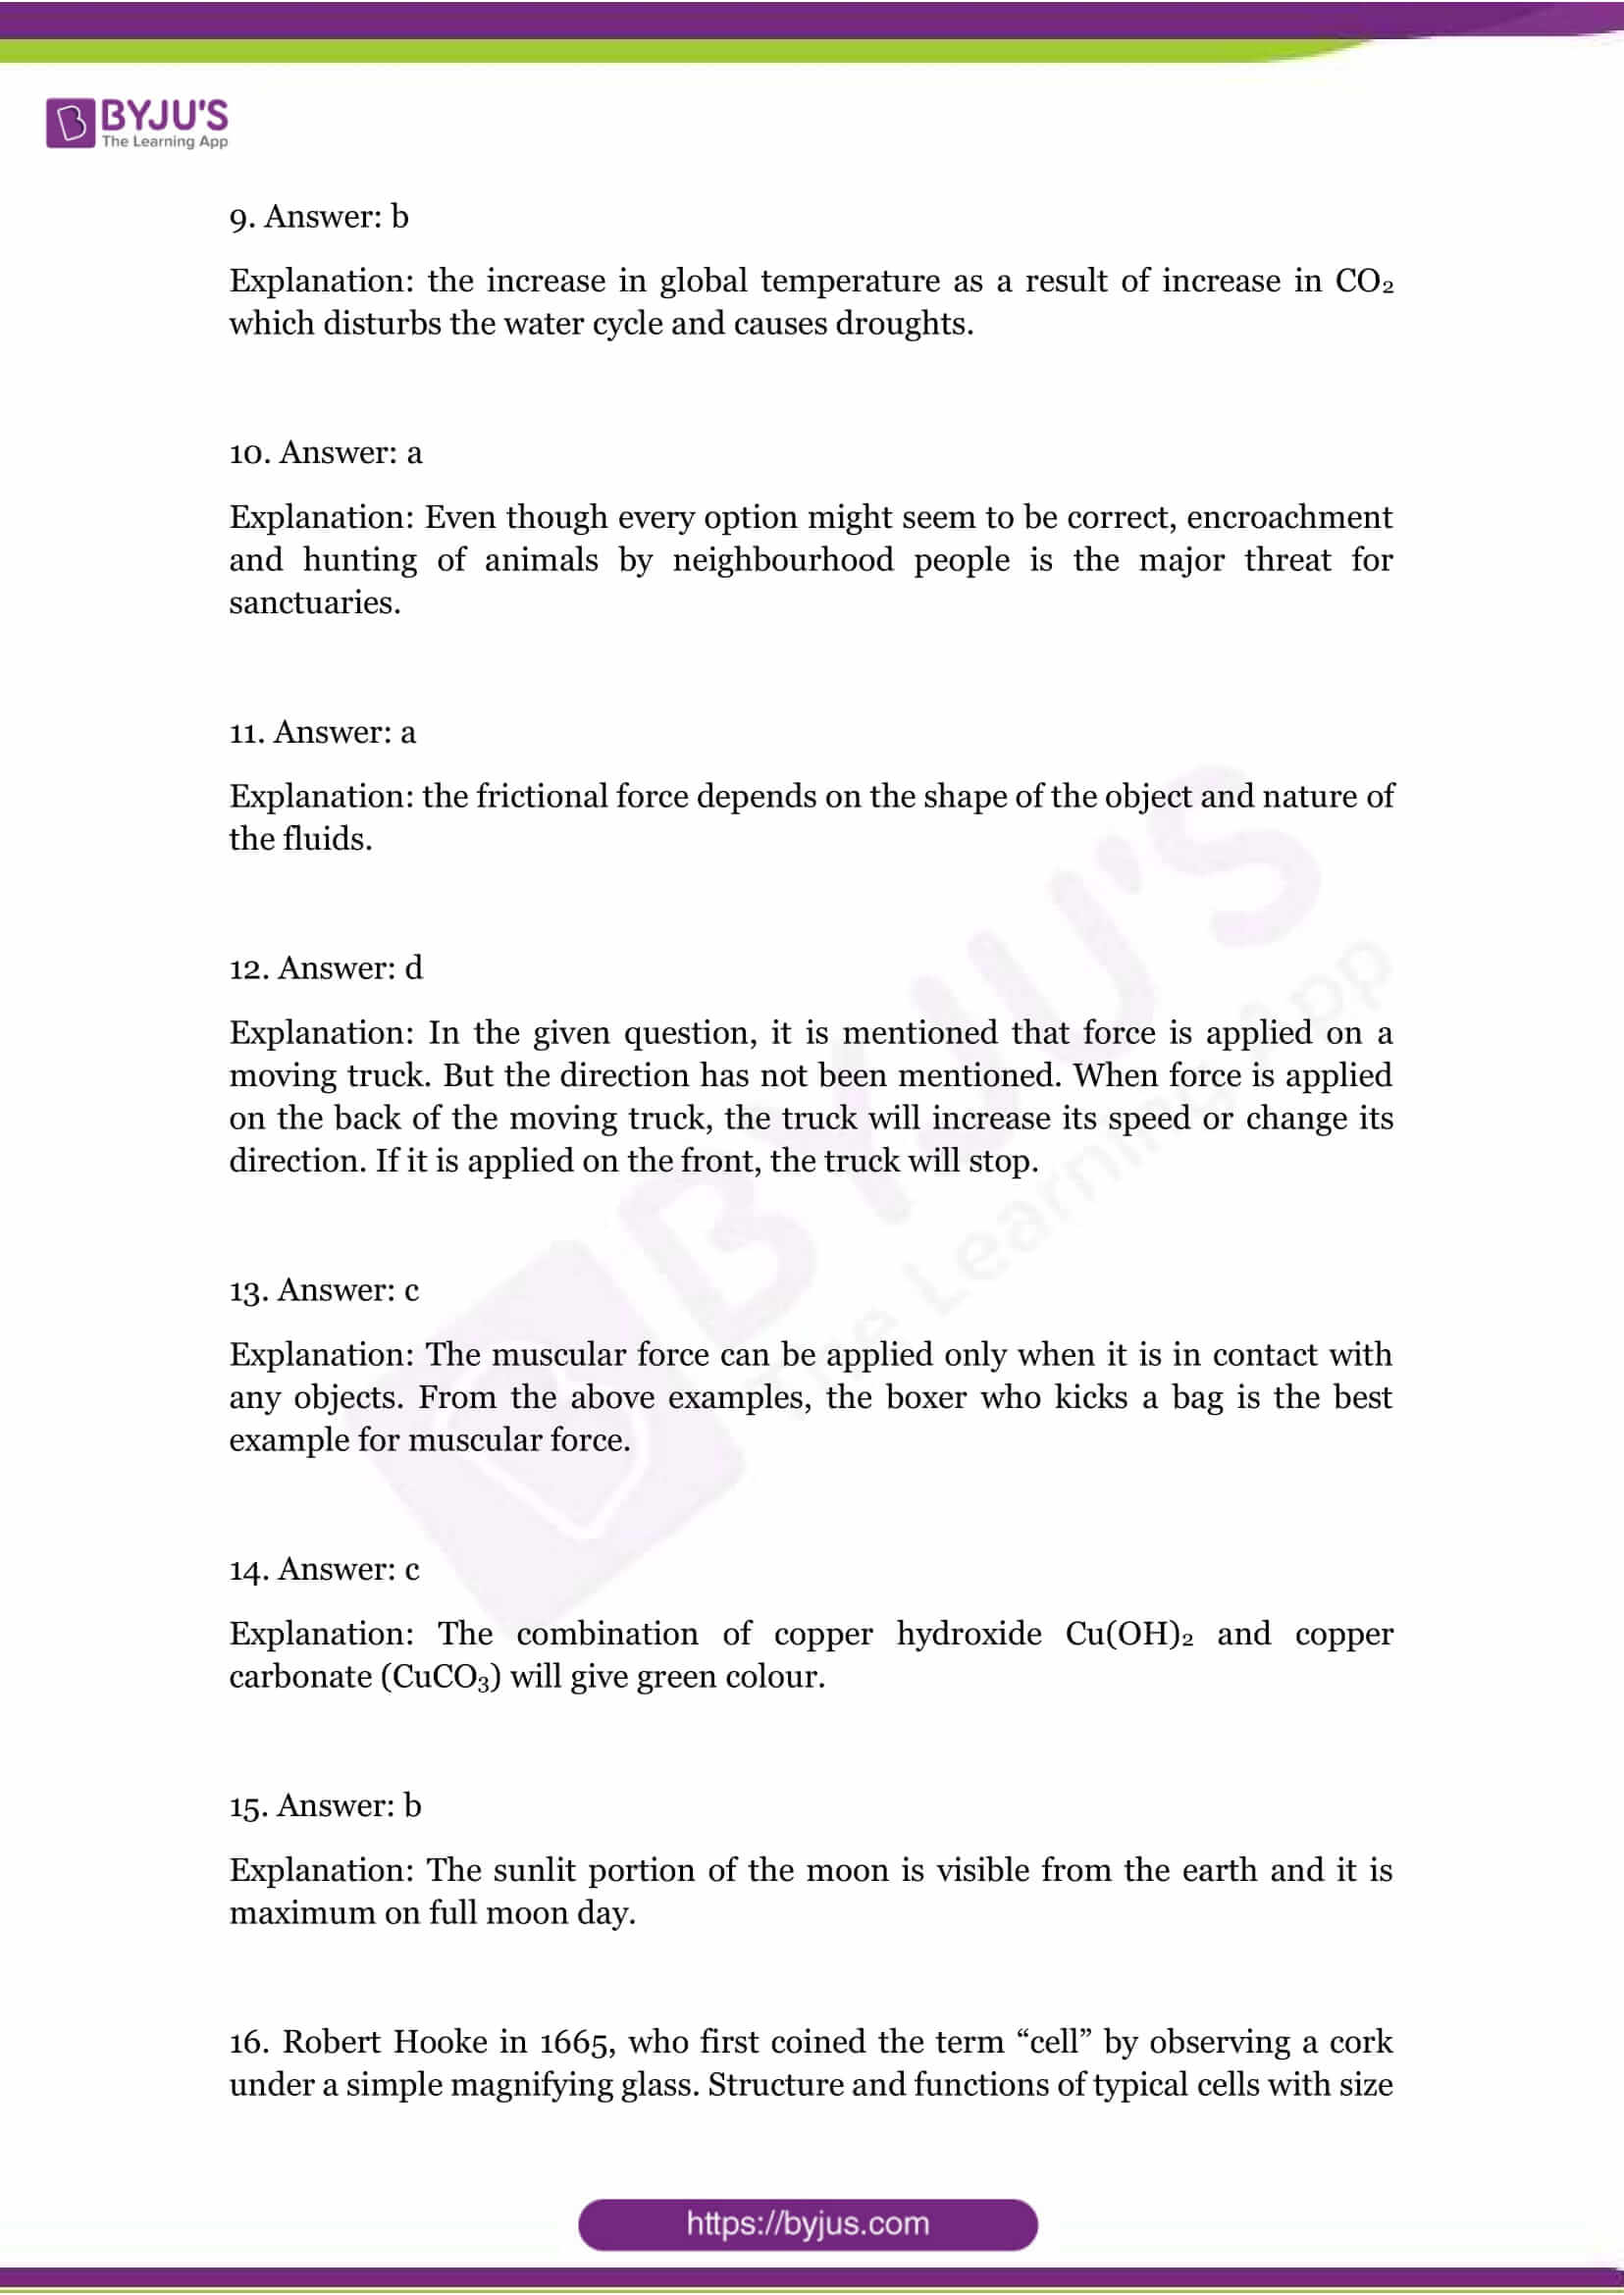 cbse class 8 science sample paper set 1 solution